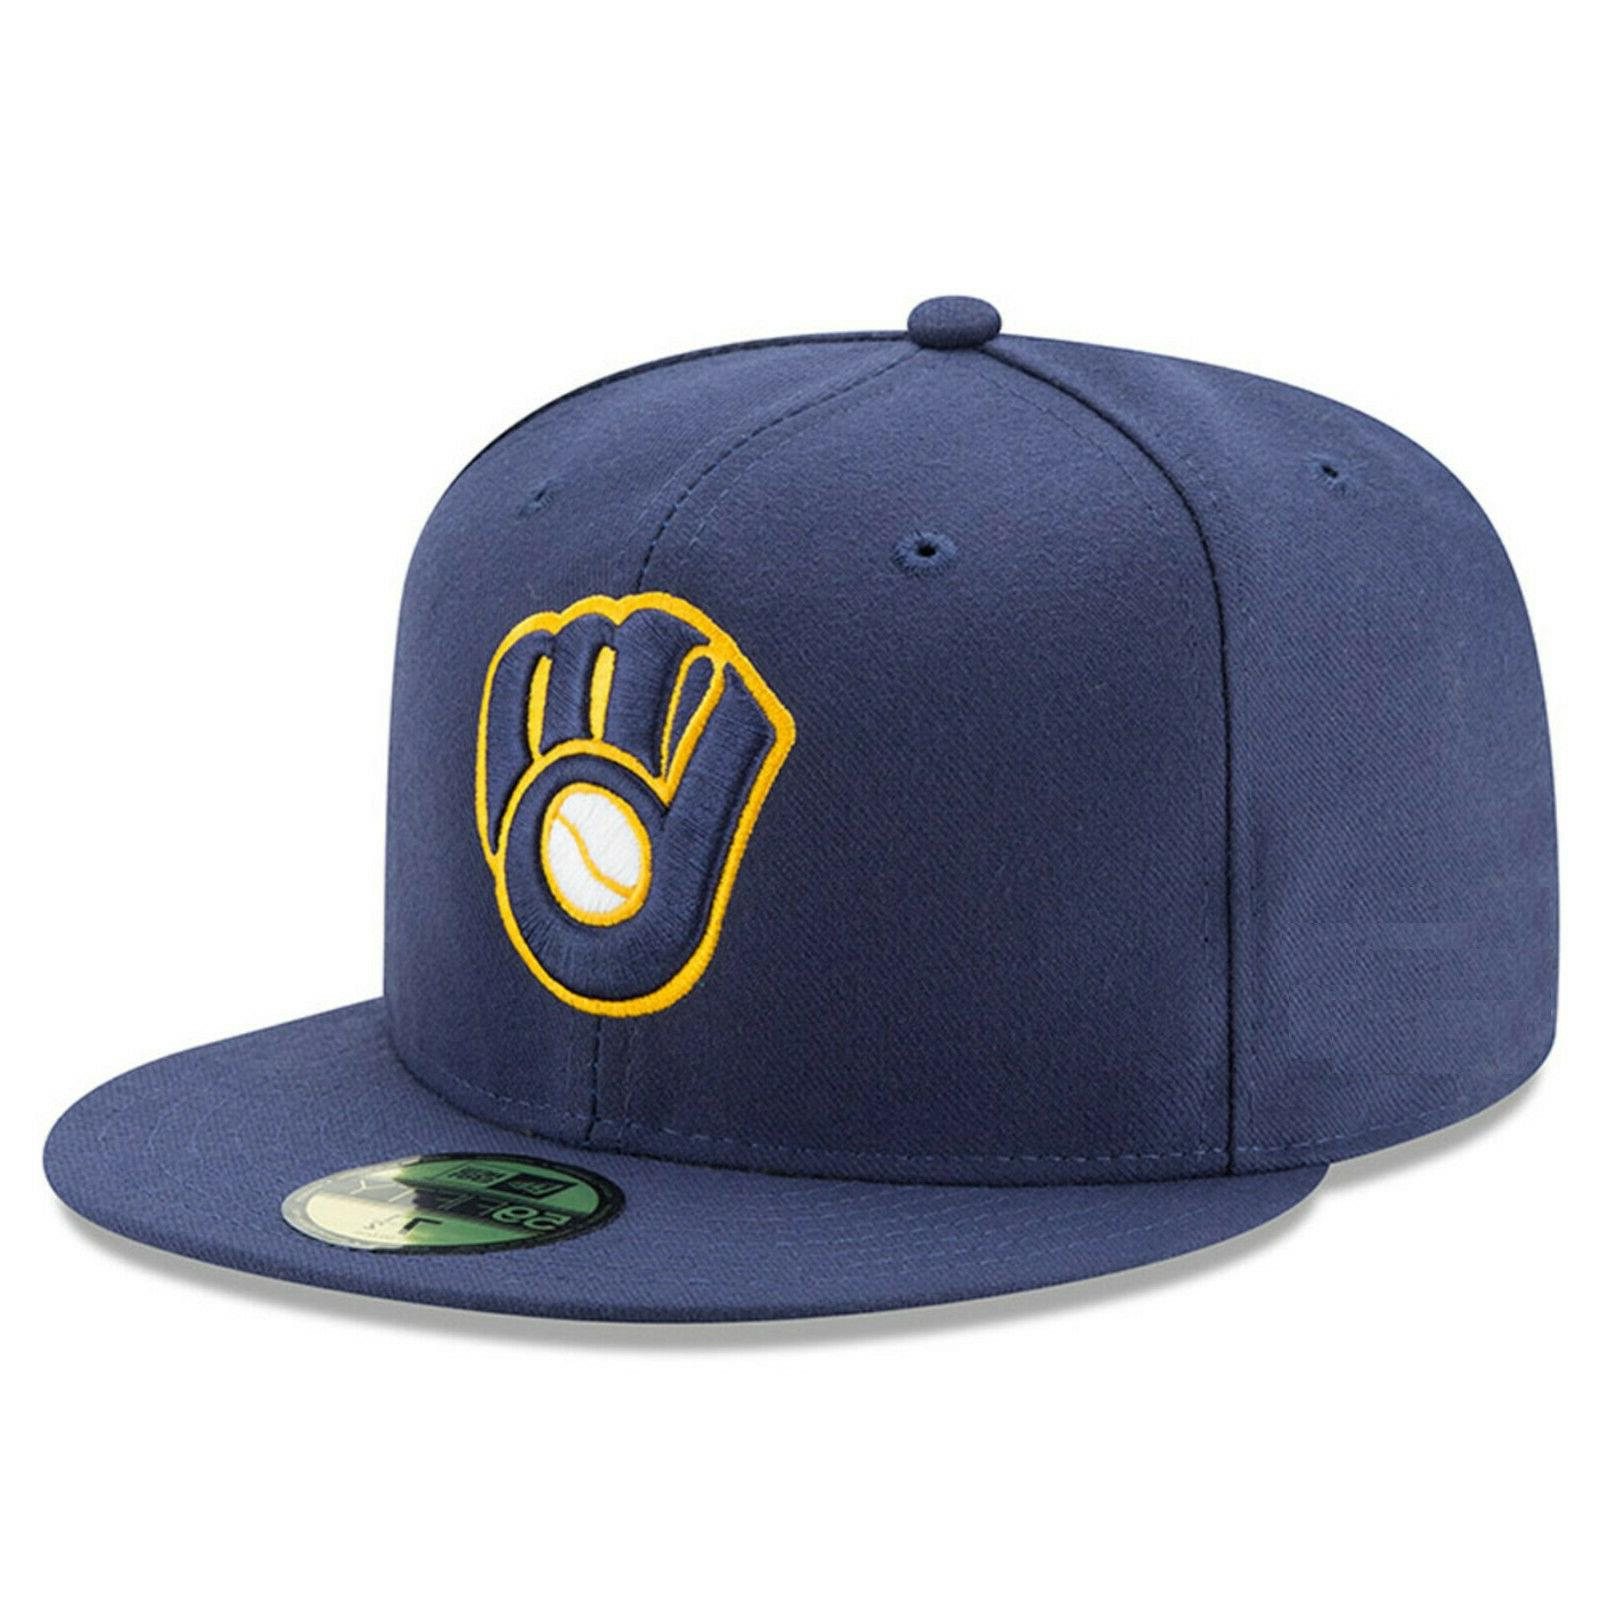 Alternate Authentic On-Field Fitted